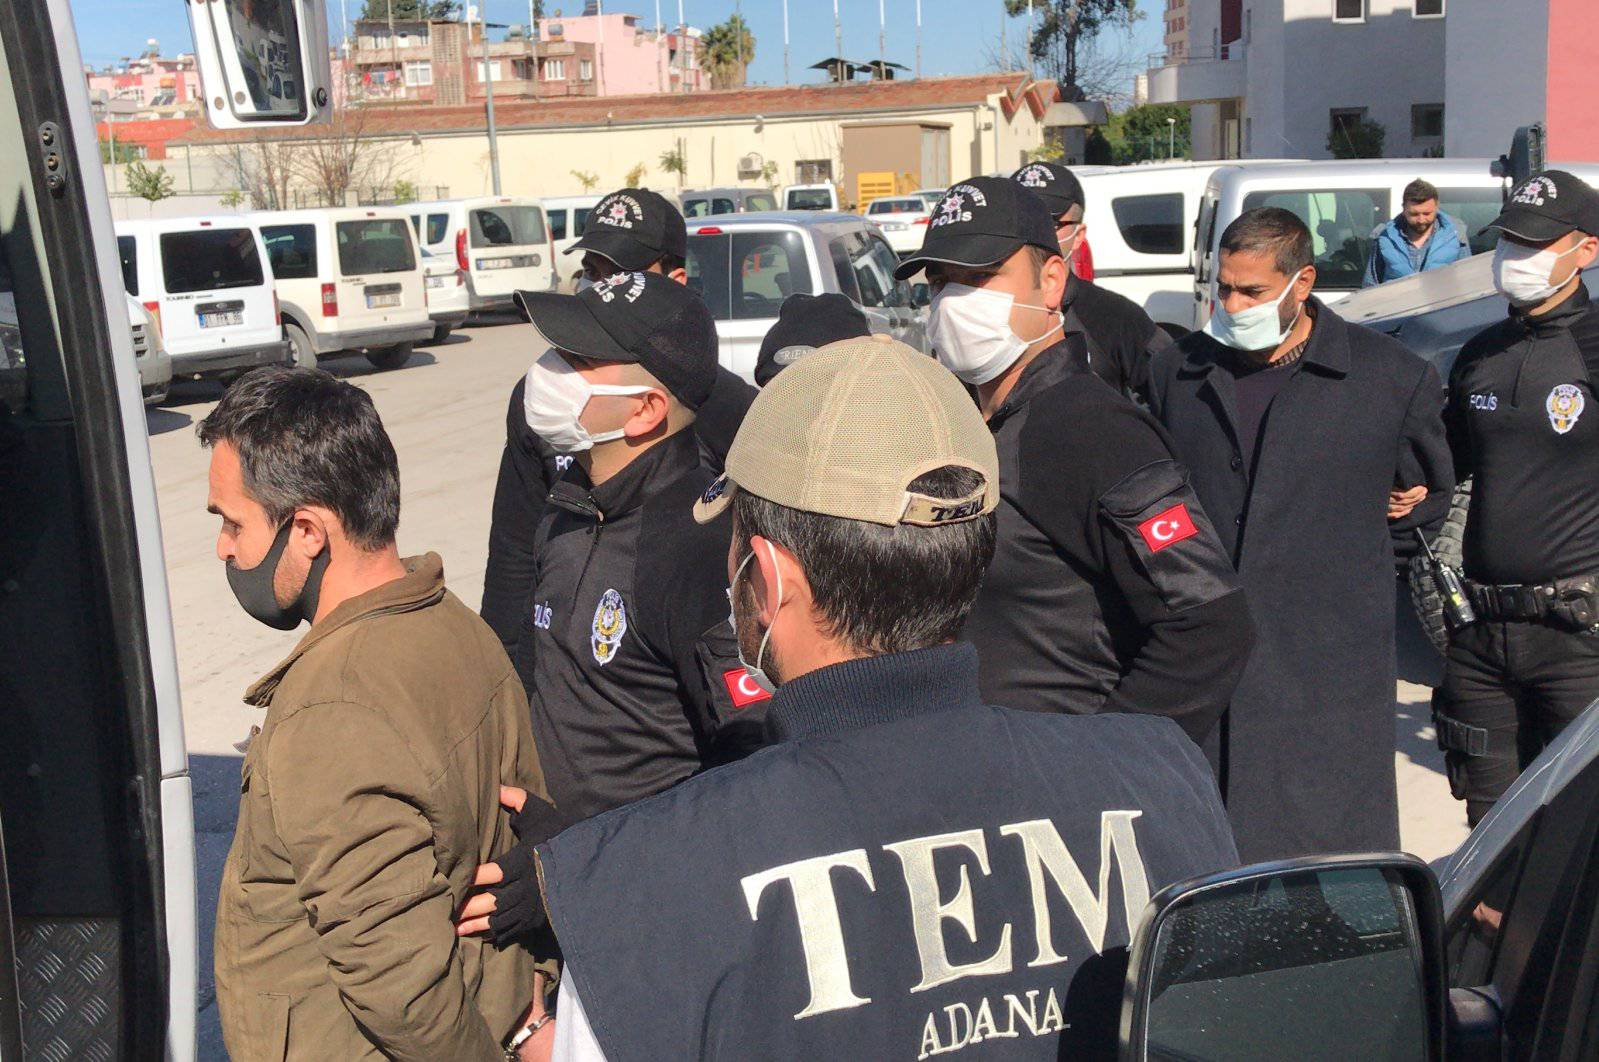 GFATF - LLL - Turkish authorities detained fourteen Islamic State terrorists and dismantles sleeper cell in Adana